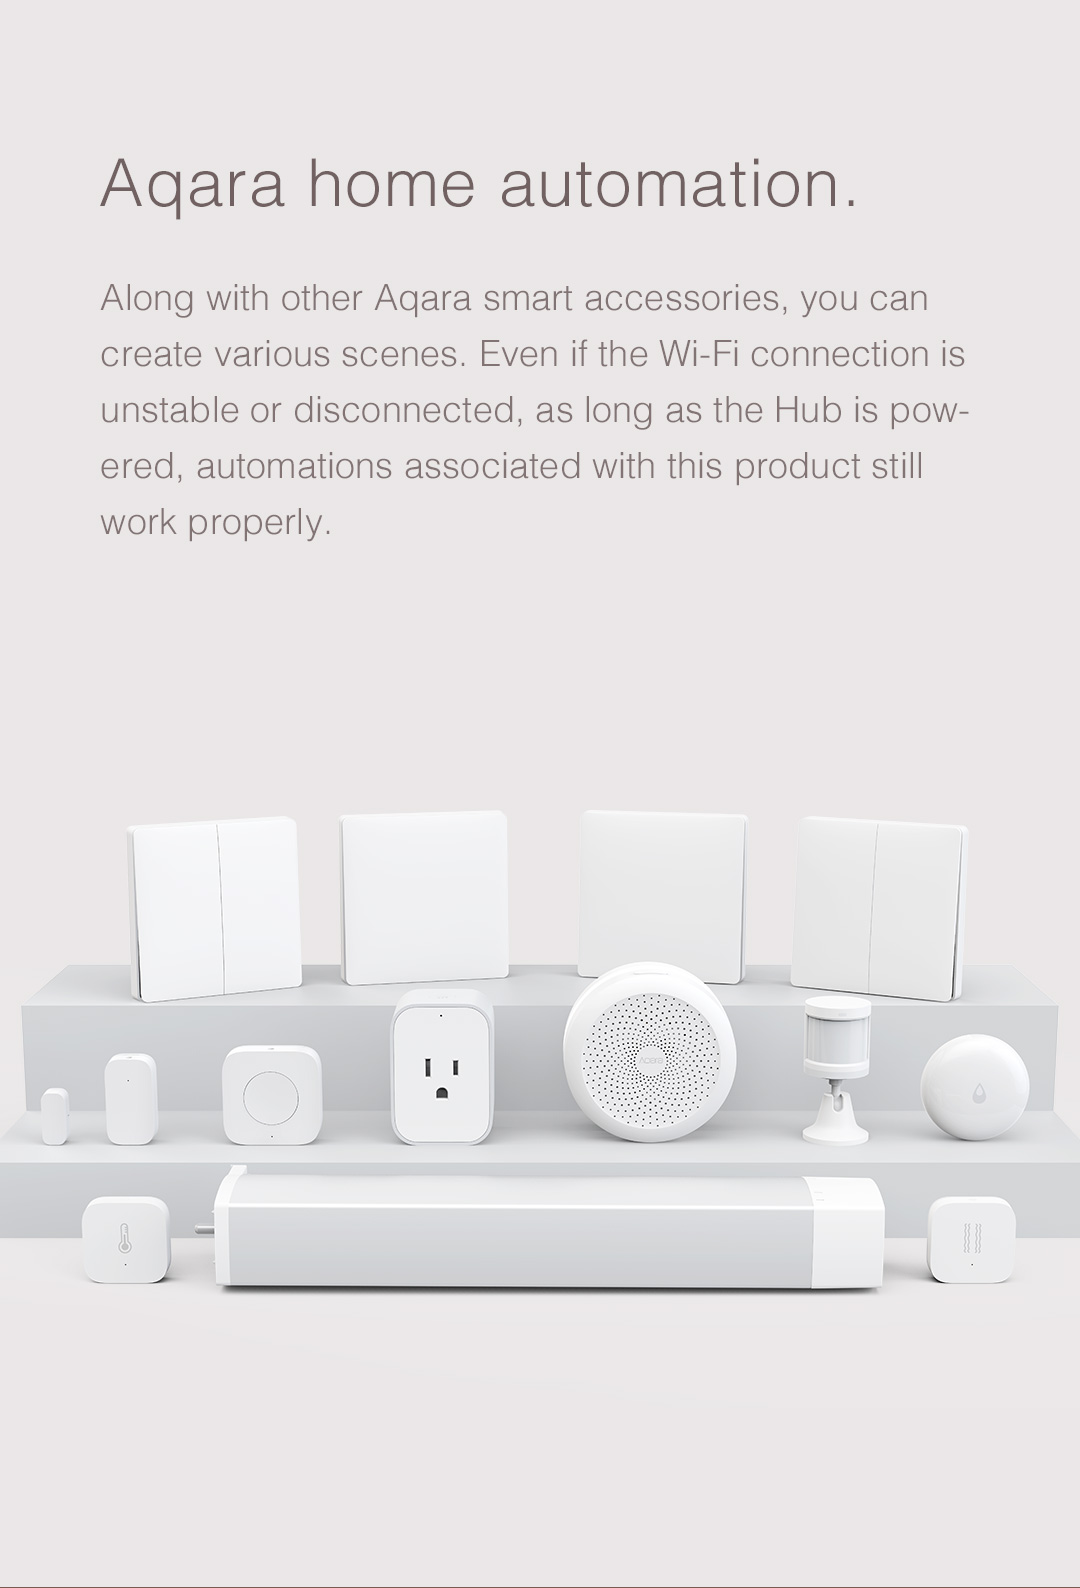 With Aqara home automation you can customize different scenes with our smart home products.